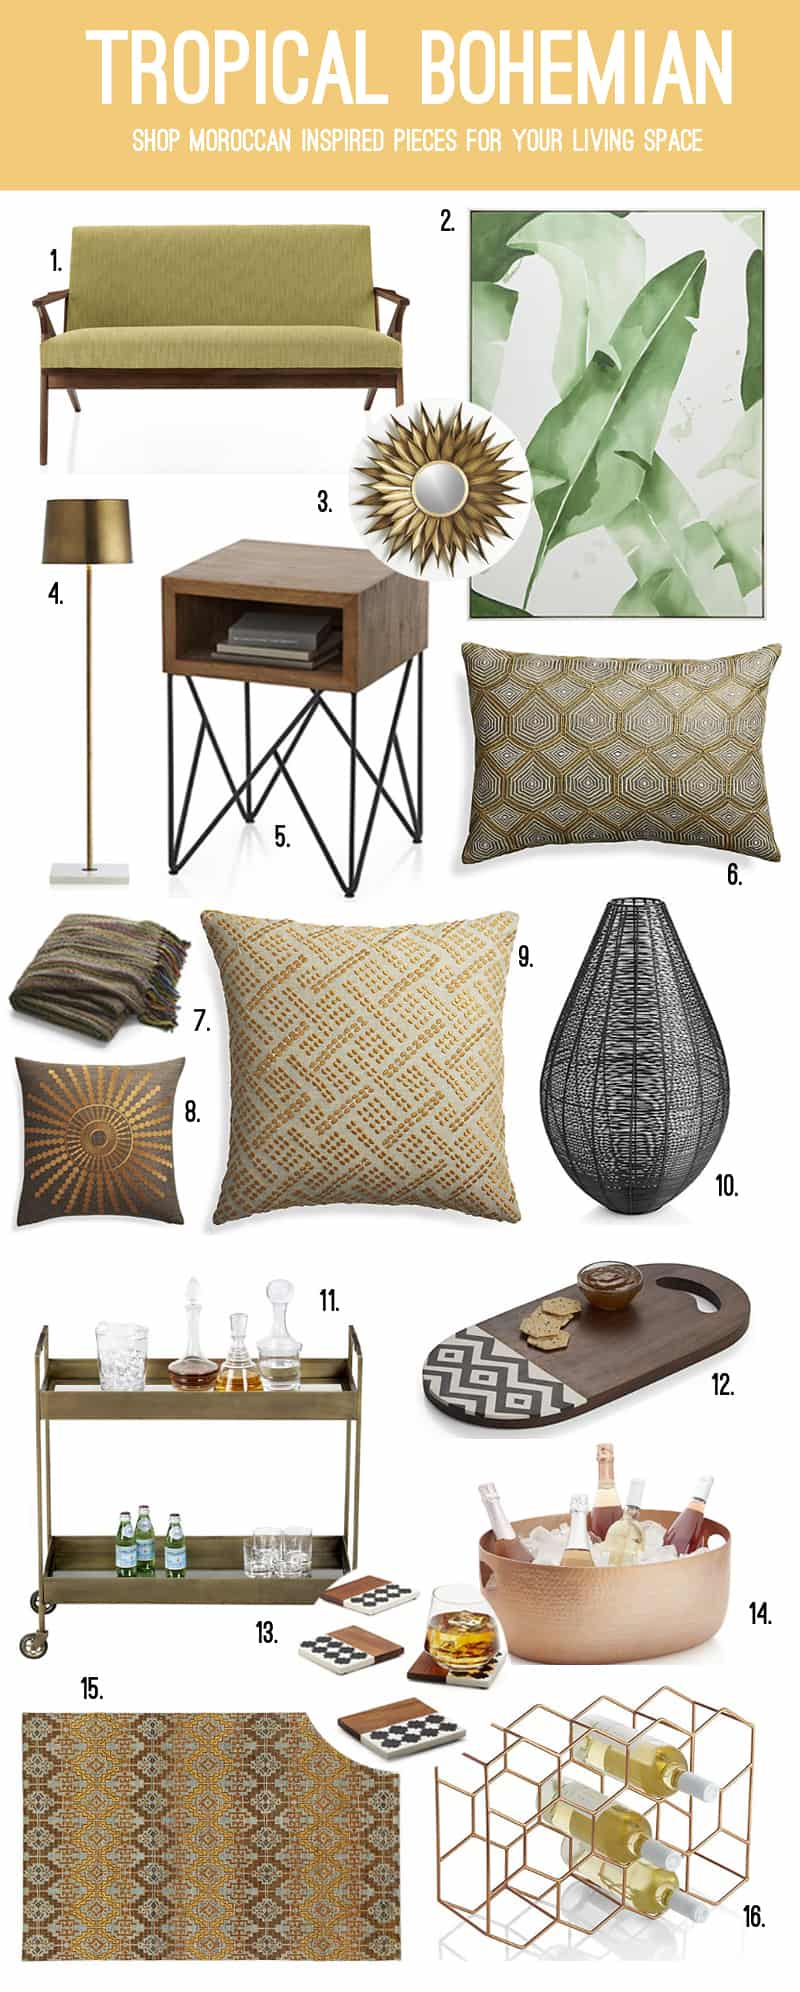 Attend A Crate And Barrel Private Registry Event To Design Your Dream